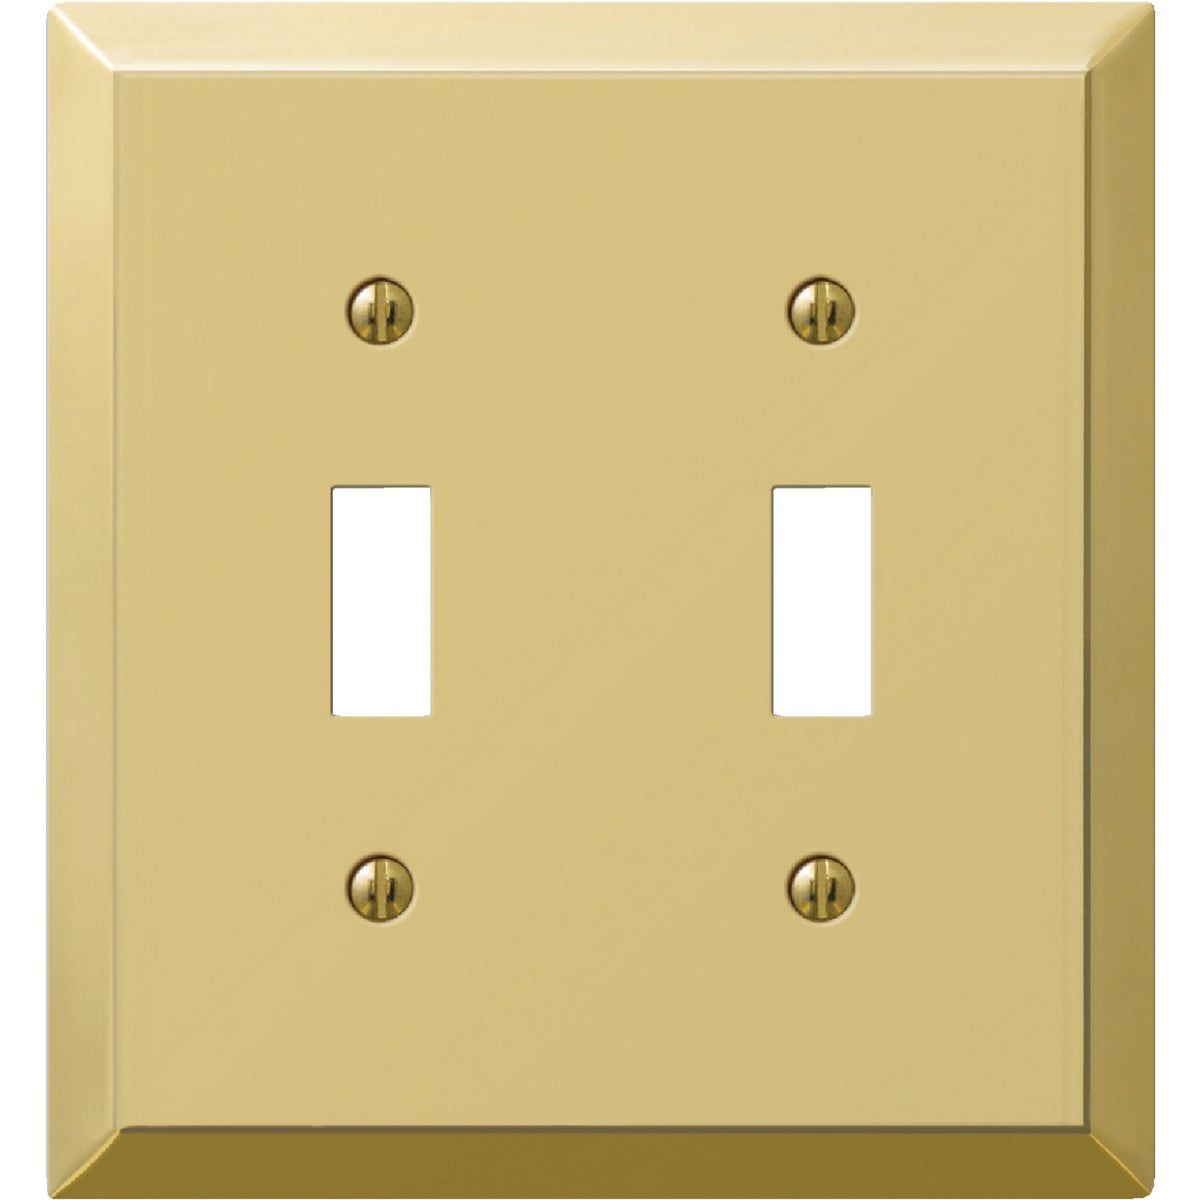 BRS 2-TOGGLE WALL PLATE - 9BS102 by Jackson Deerfield Mf